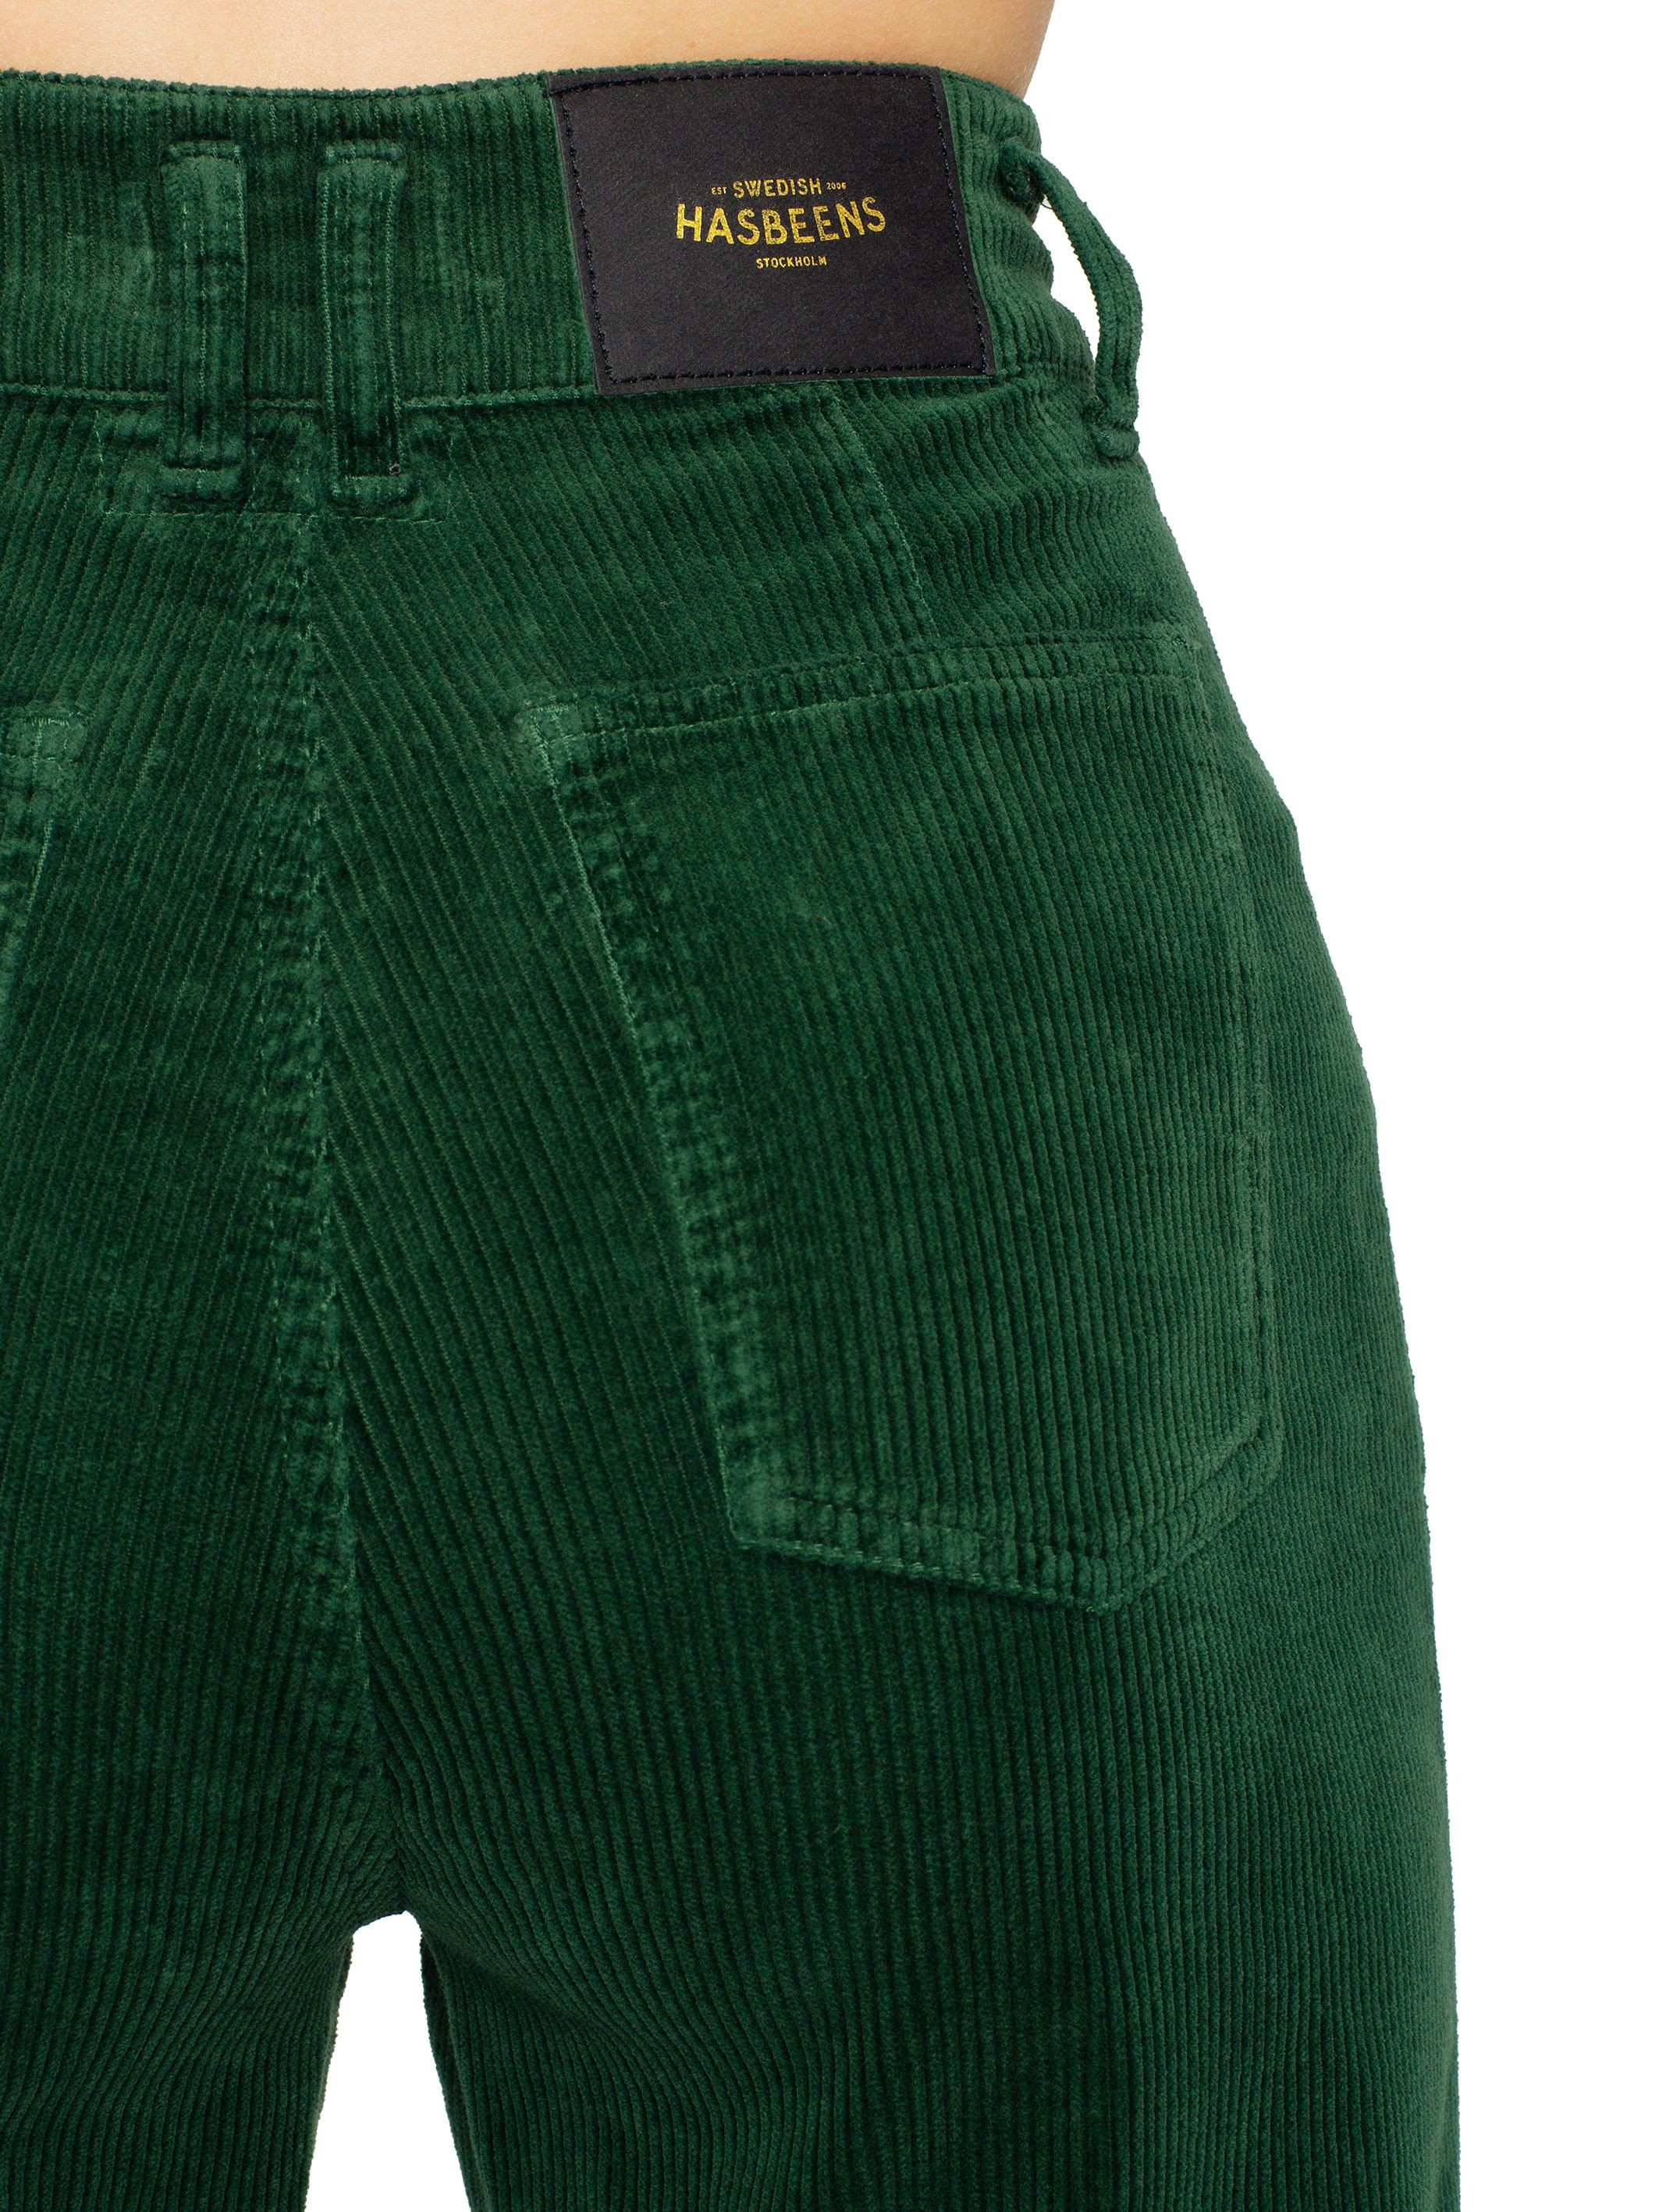 Classy outfit green velvet jeans, fashion accessory, swedish hasbeens, bermuda shorts, active sh ...